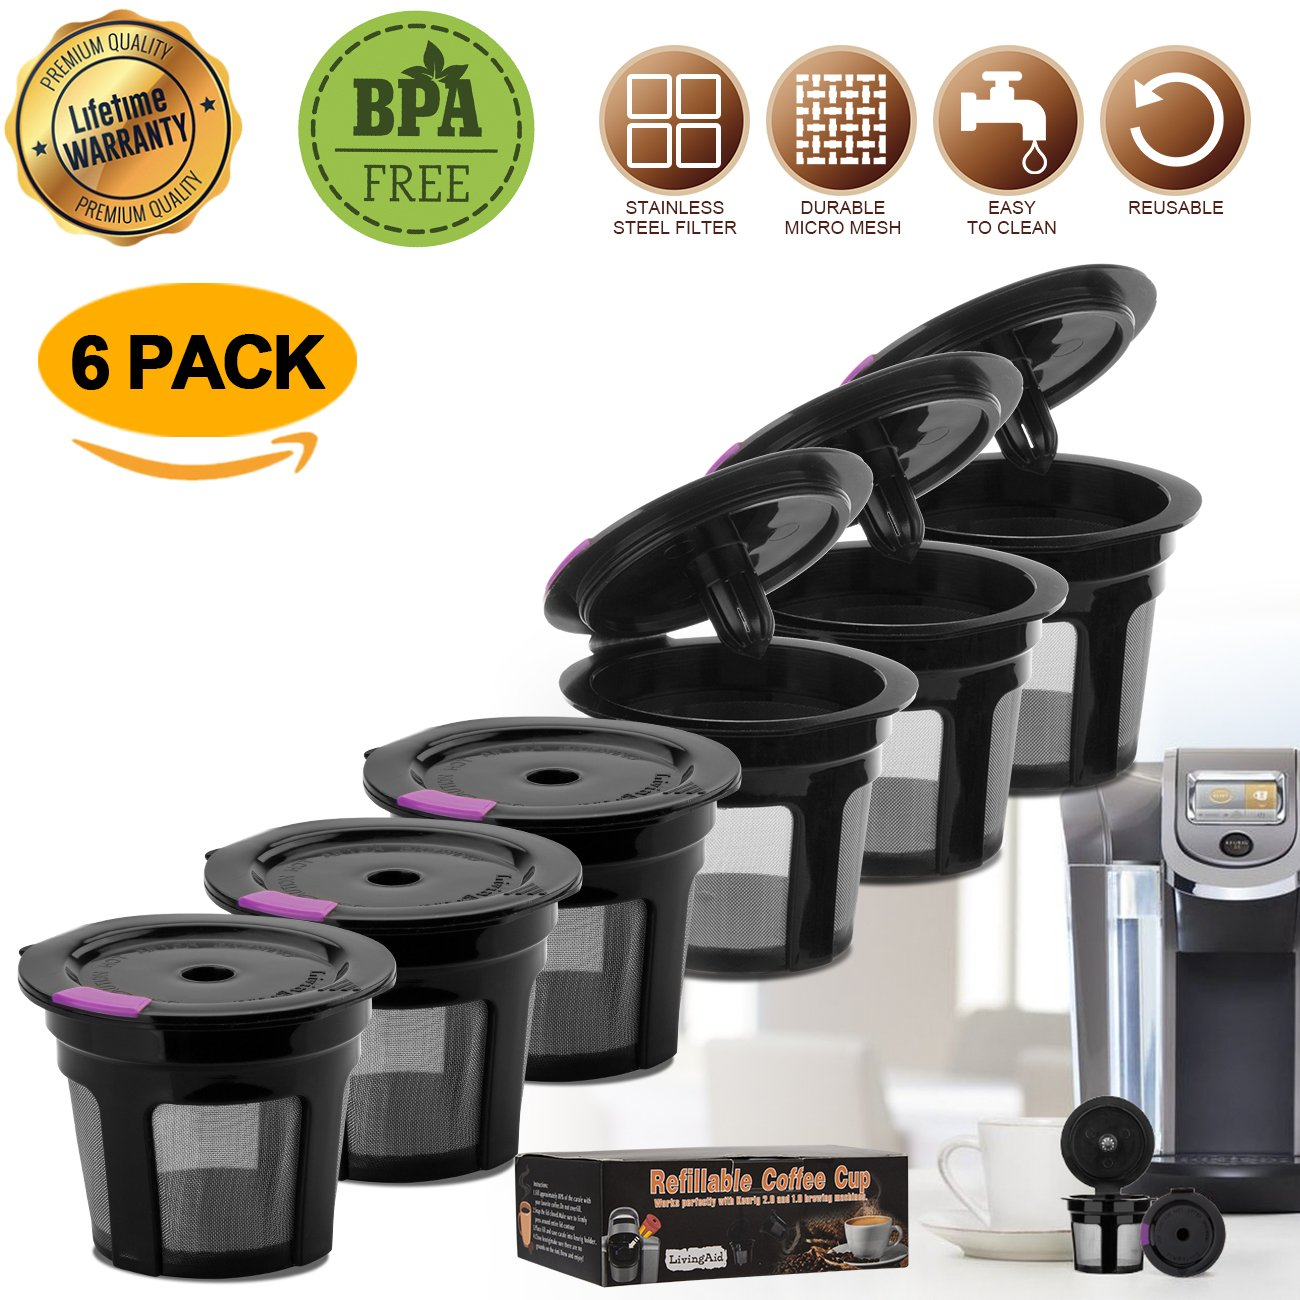 Reusable K CUP, LivingAid Reusable K CUPS 2.0 Coffee Filter Coffee Stainless Mesh Solo Filter Replacement for Keurig Brewers 1.0 or 2.0 Machine BPA Free (Black) (6 Packs)